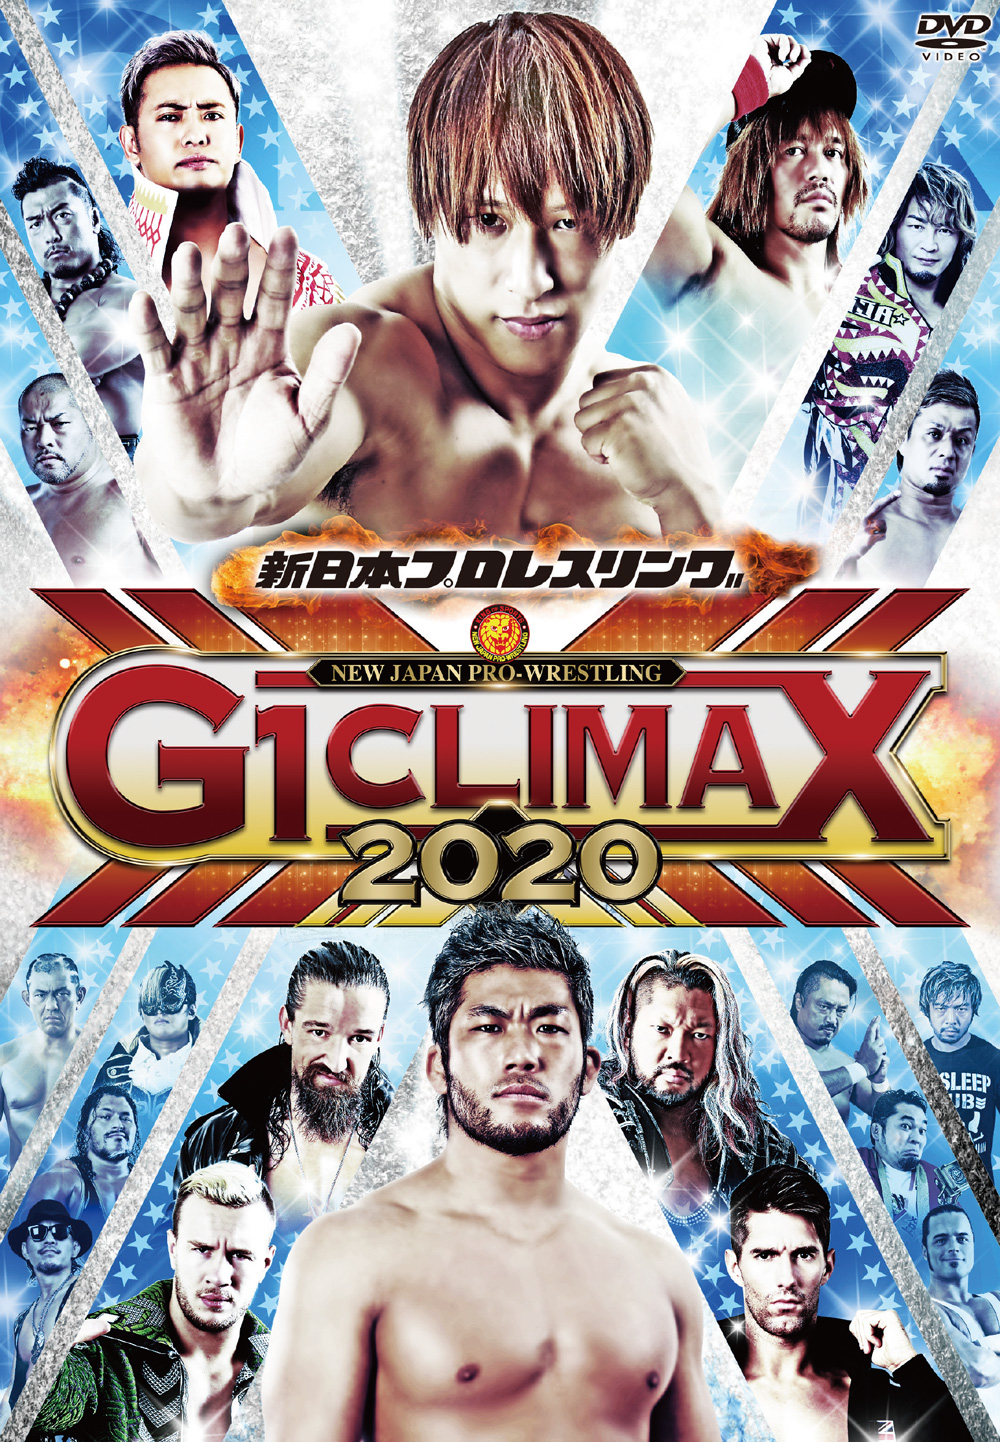 G1 CLIMAX 2020